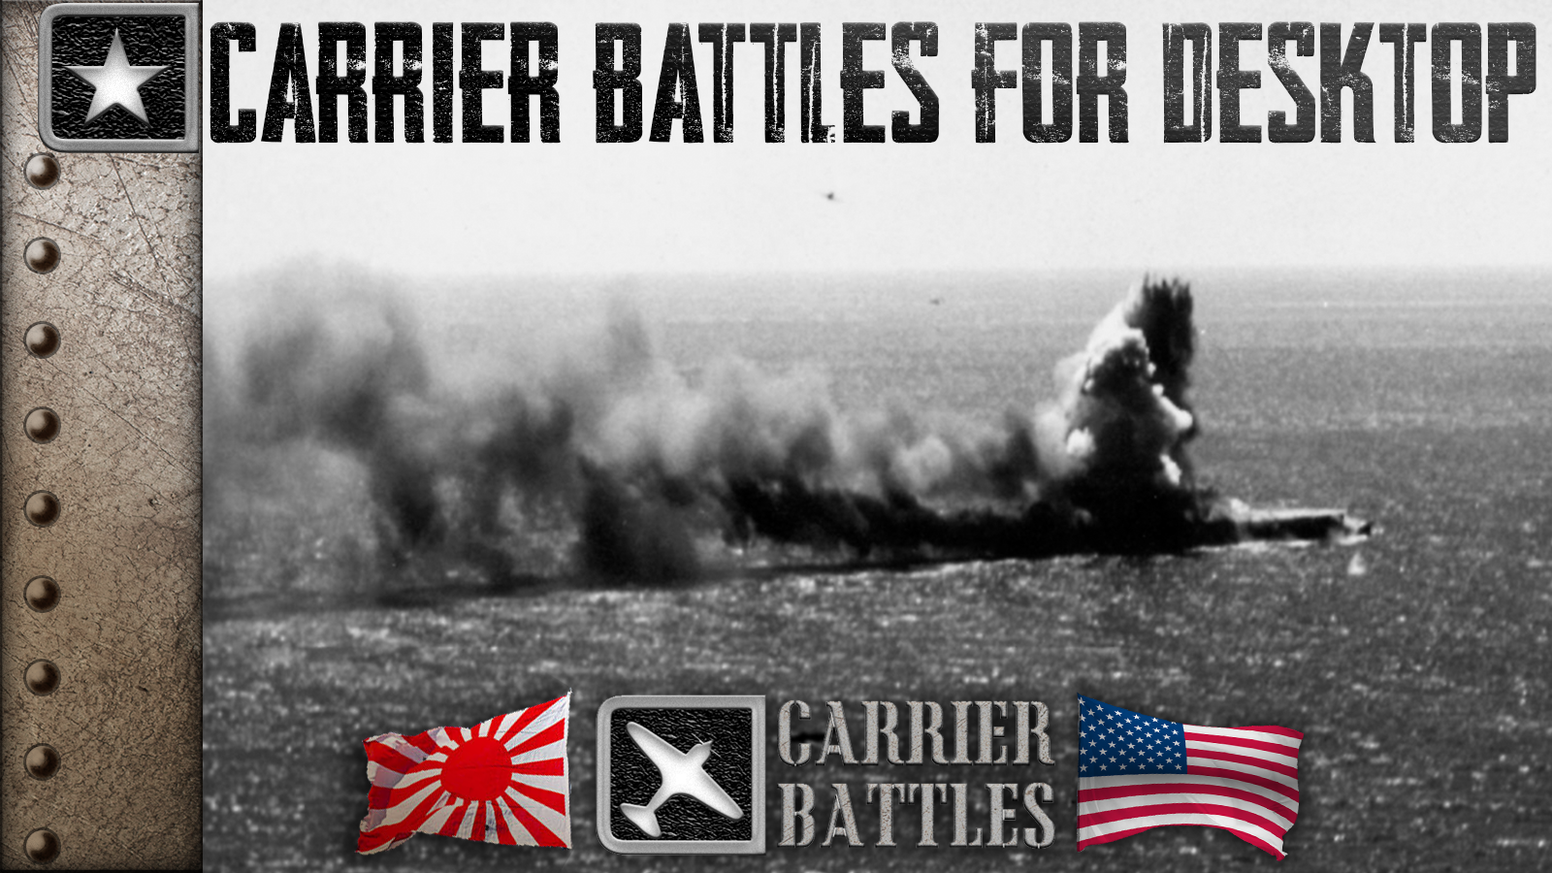 New PC, Mac, iOS and Android Version of Carrier Battles